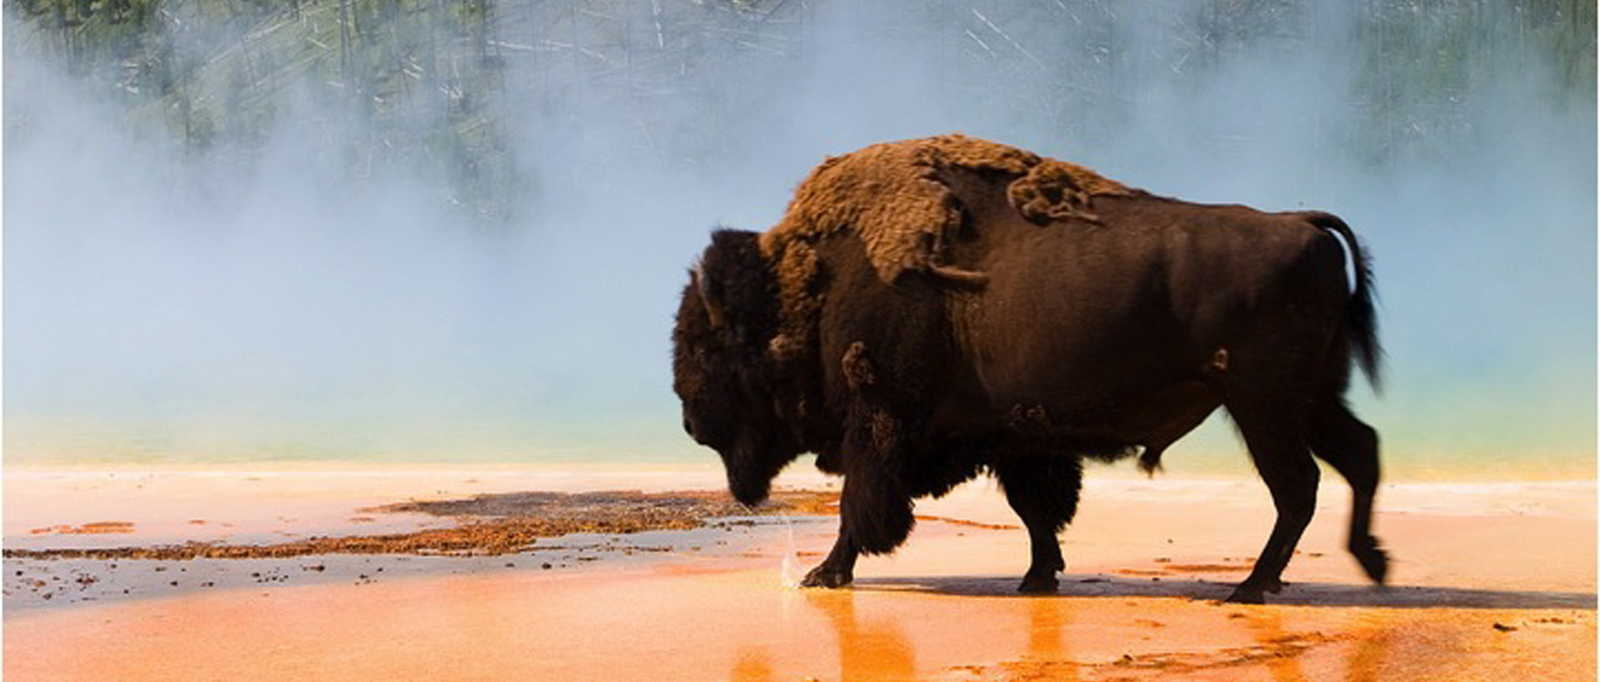 Buffalo in Yellowstone National Park, Wyoming, USA